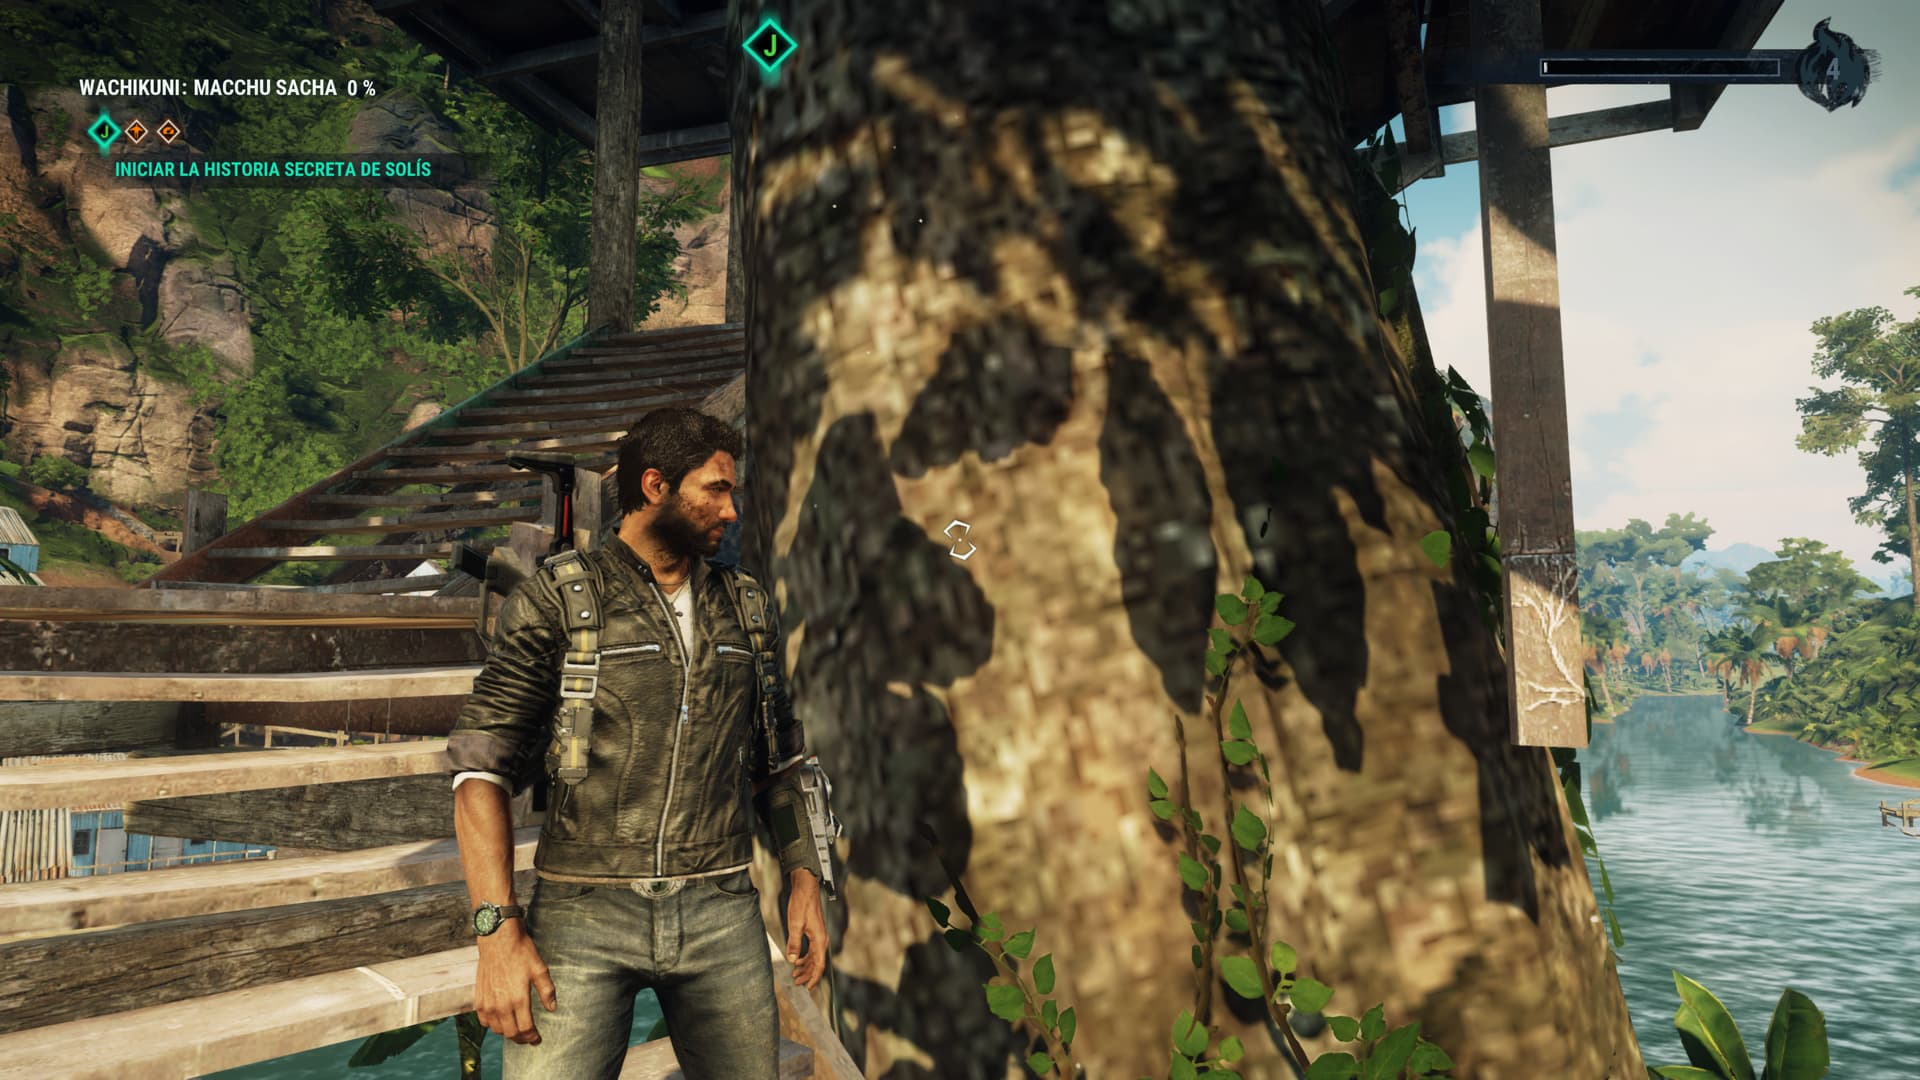 Análisis de Just Cause 4 - Xbox One 3